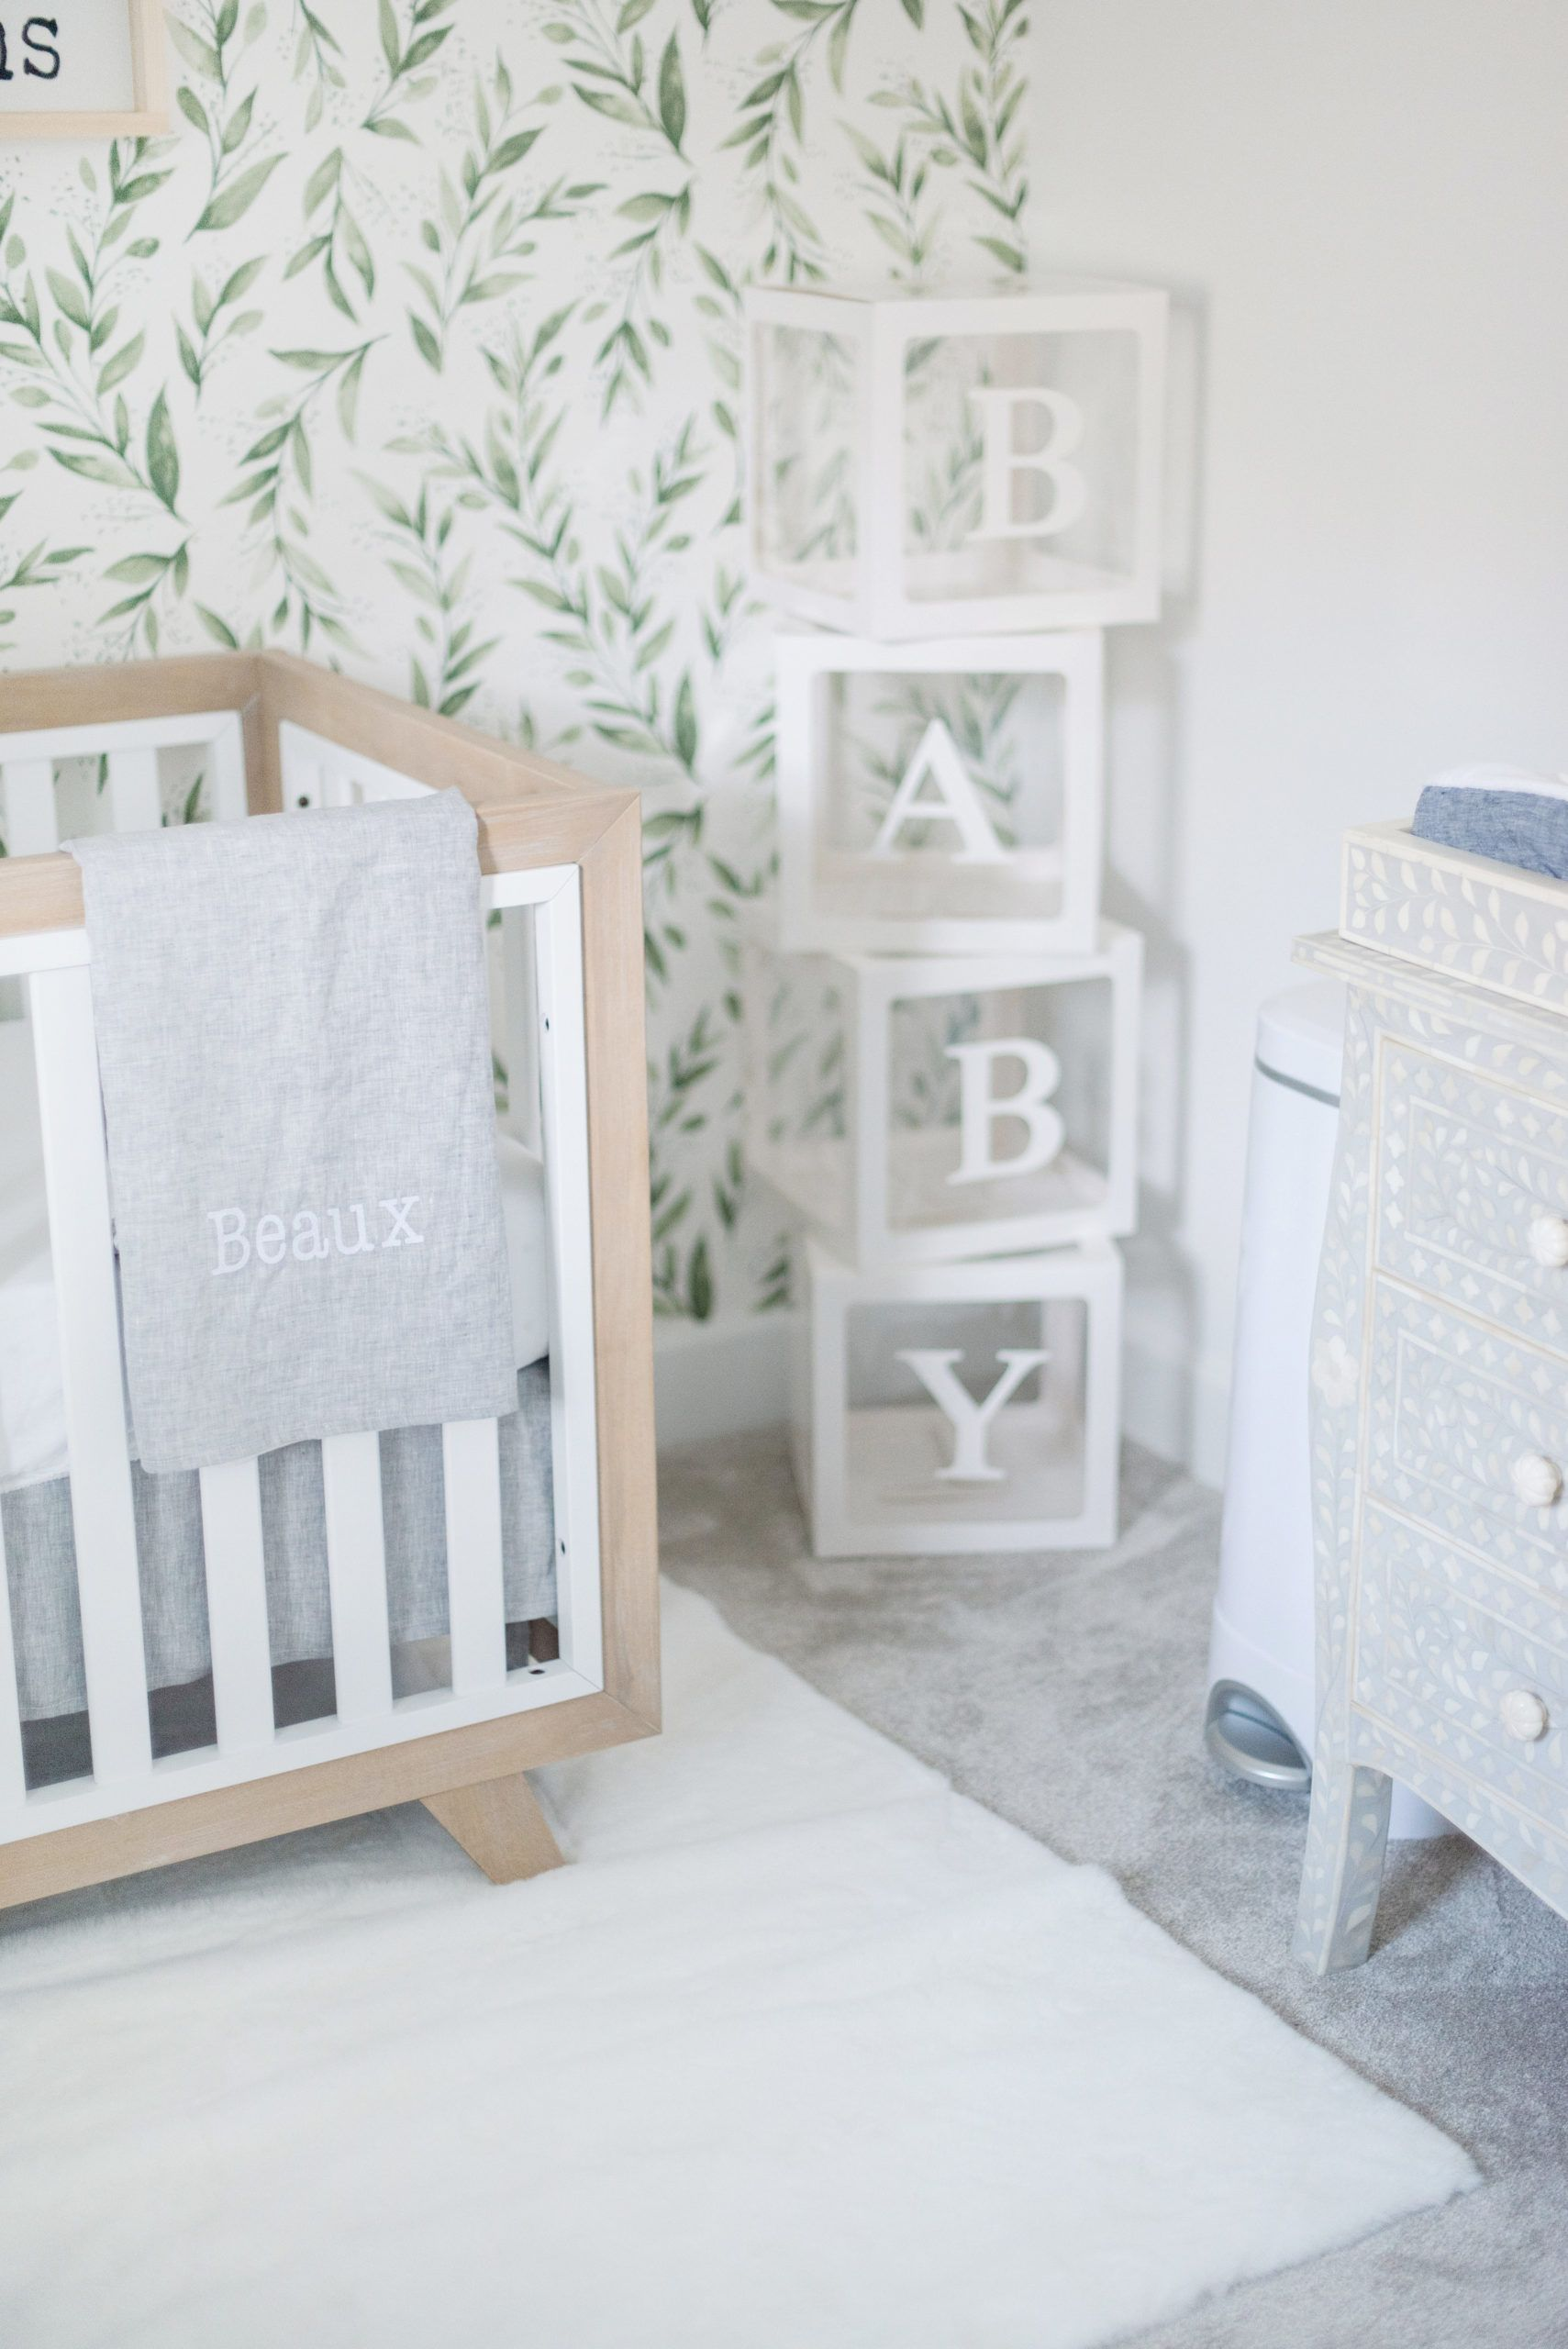 A Neutral Nursery For Baby Beaux Project Nursery In 2021 Nursery Room Design Nursery Neutral Nursery Decor Inspiration